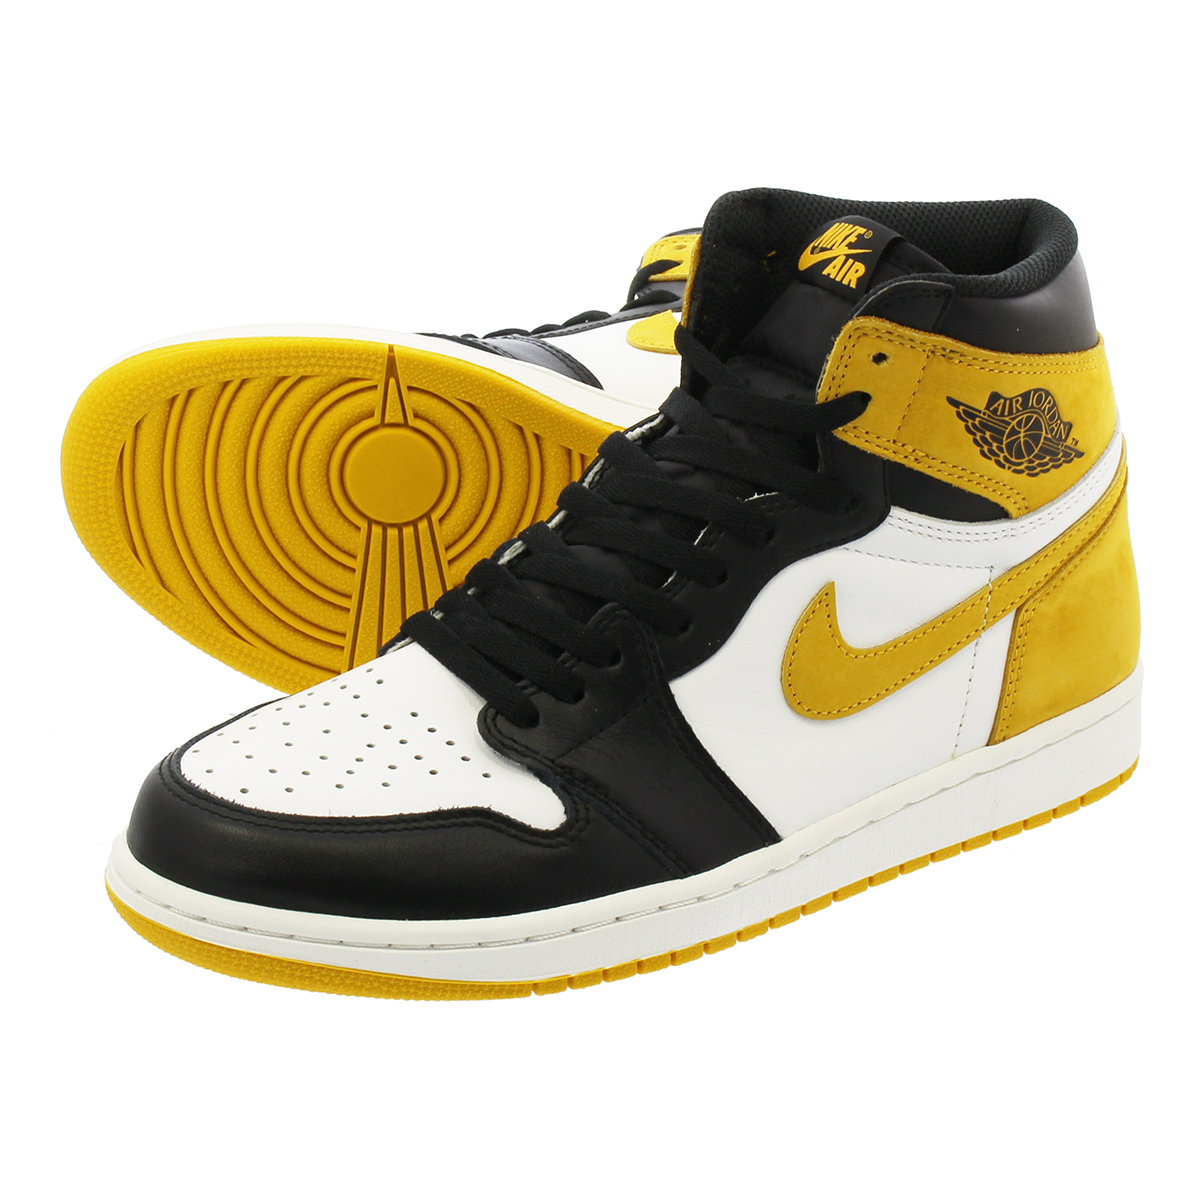 426af290e14bdd LOWTEX PLUS  NIKE AIR JORDAN 1 RETRO HIGH OG Nike Air Jordan 1 nostalgic high  OG YELLOW OCHRE